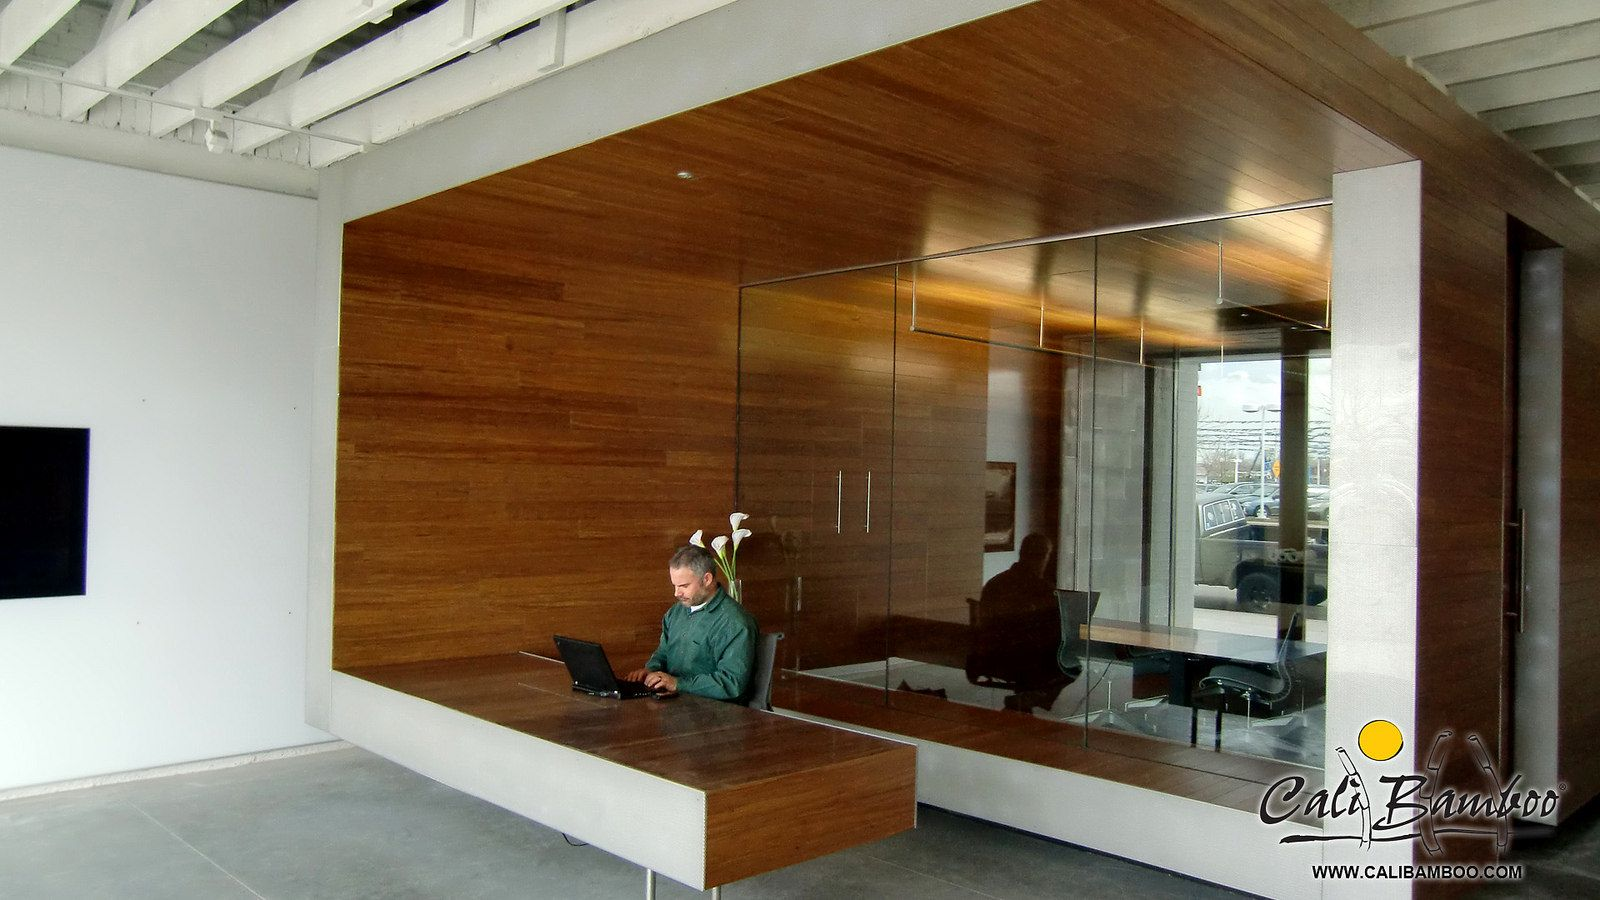 Cali Bamboo Flooring As A Unique Office Wall Treatment